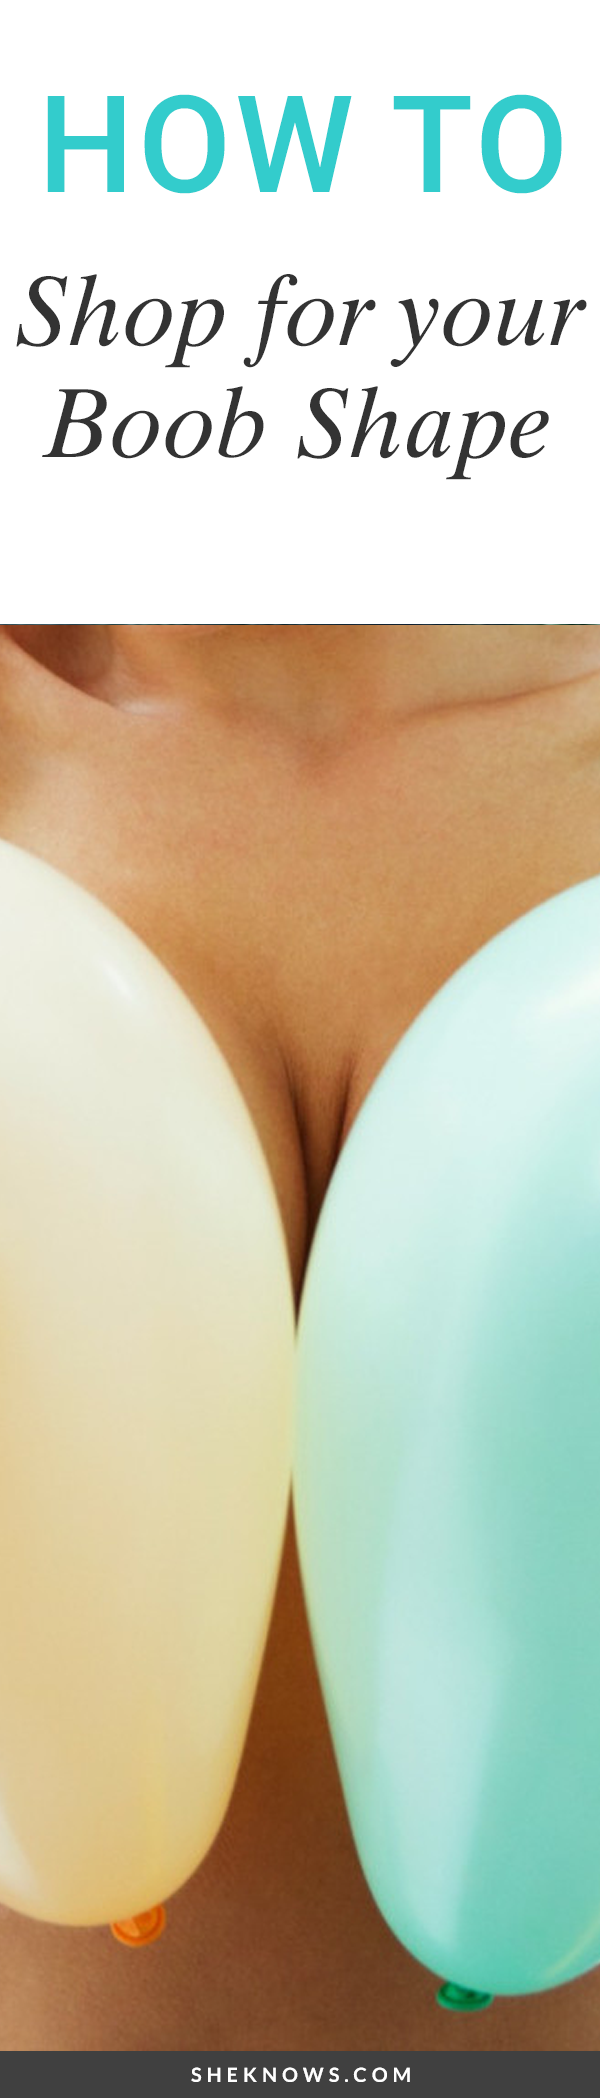 Pin it! Knowing your boob shape